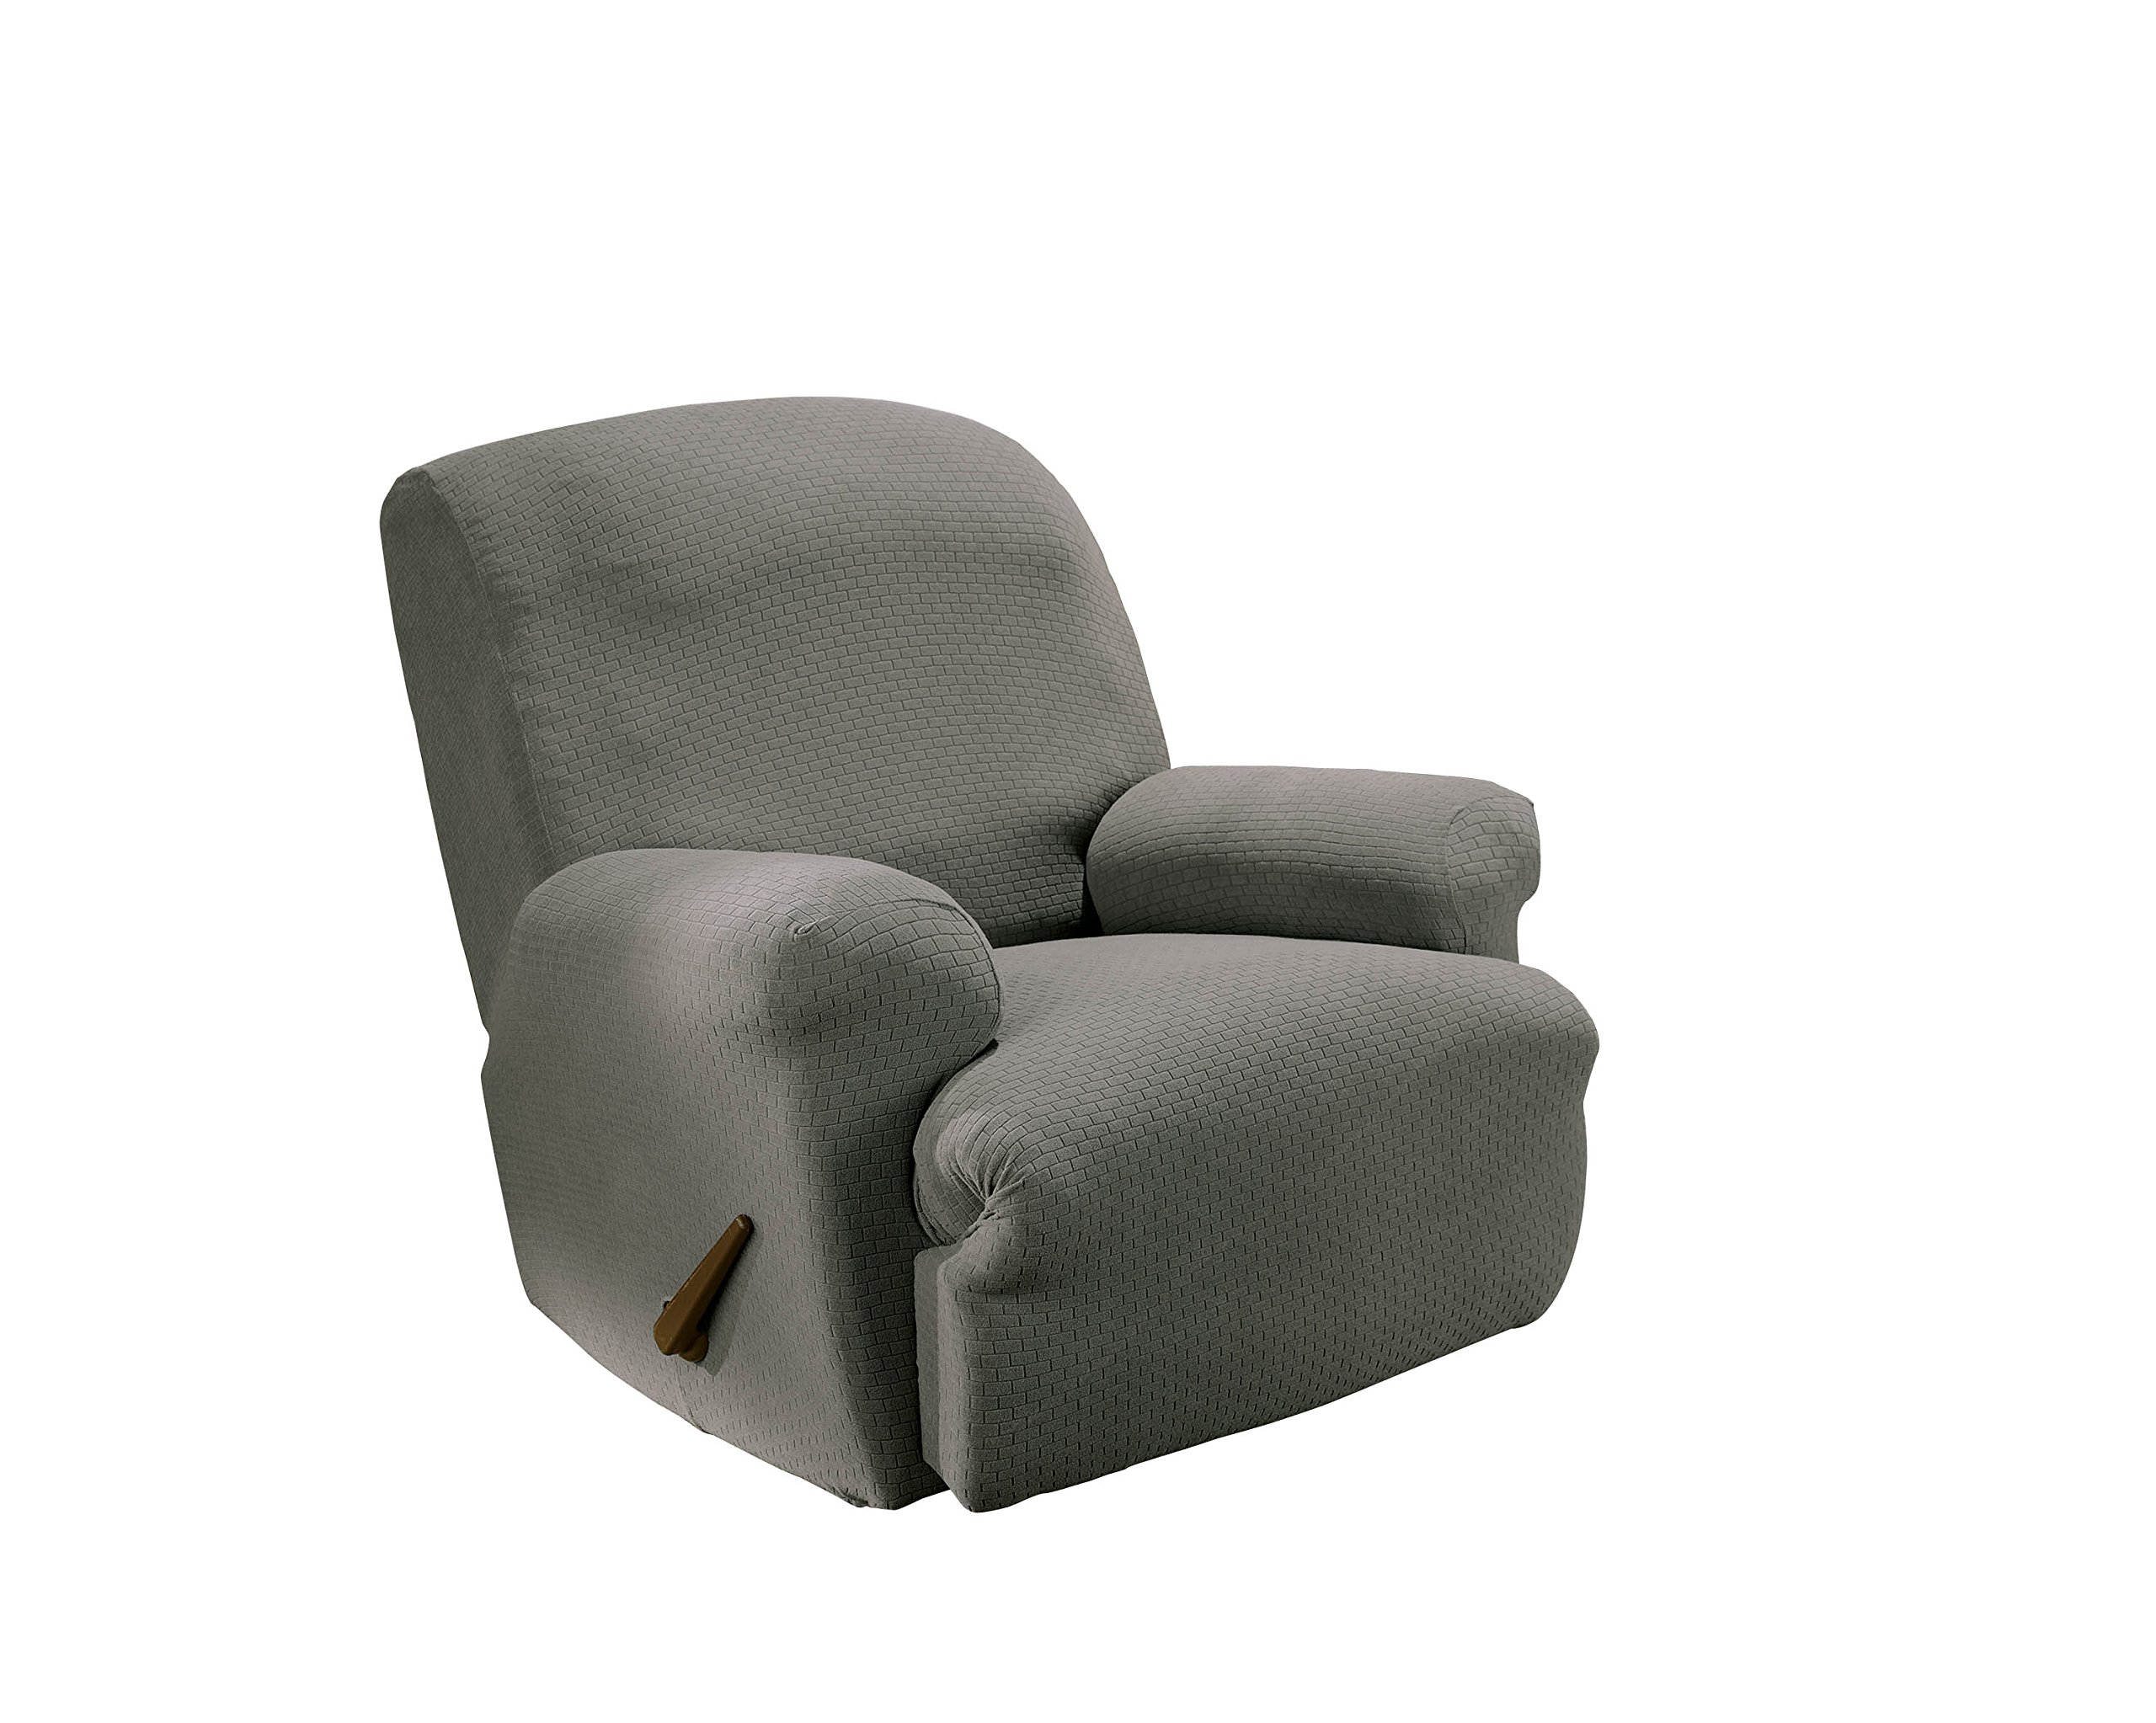 SureFit Simple Stretch Subway - Recliner Slipcover  - Gray (SF44601) by Surefit